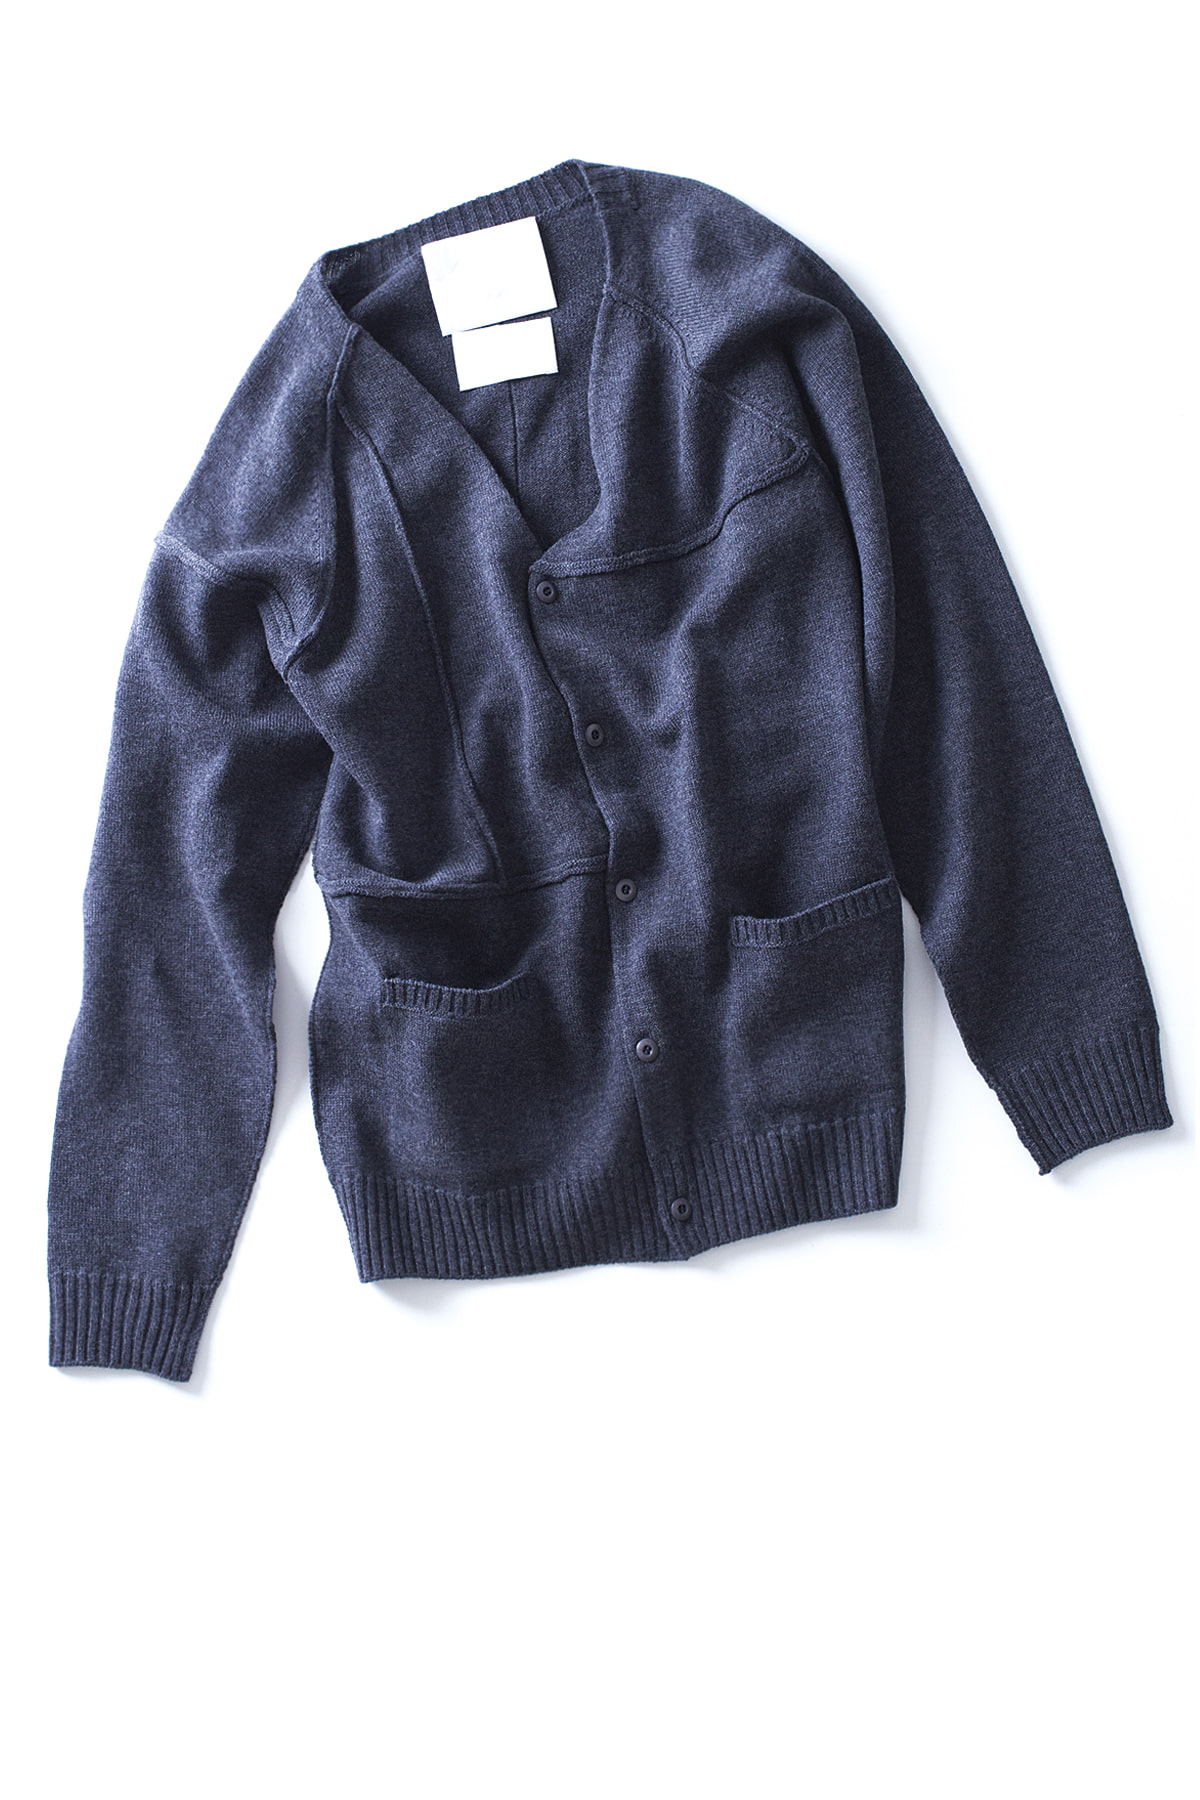 WHITE MOUNTAINEERING : Contrast Knit Cardigan (Grey)